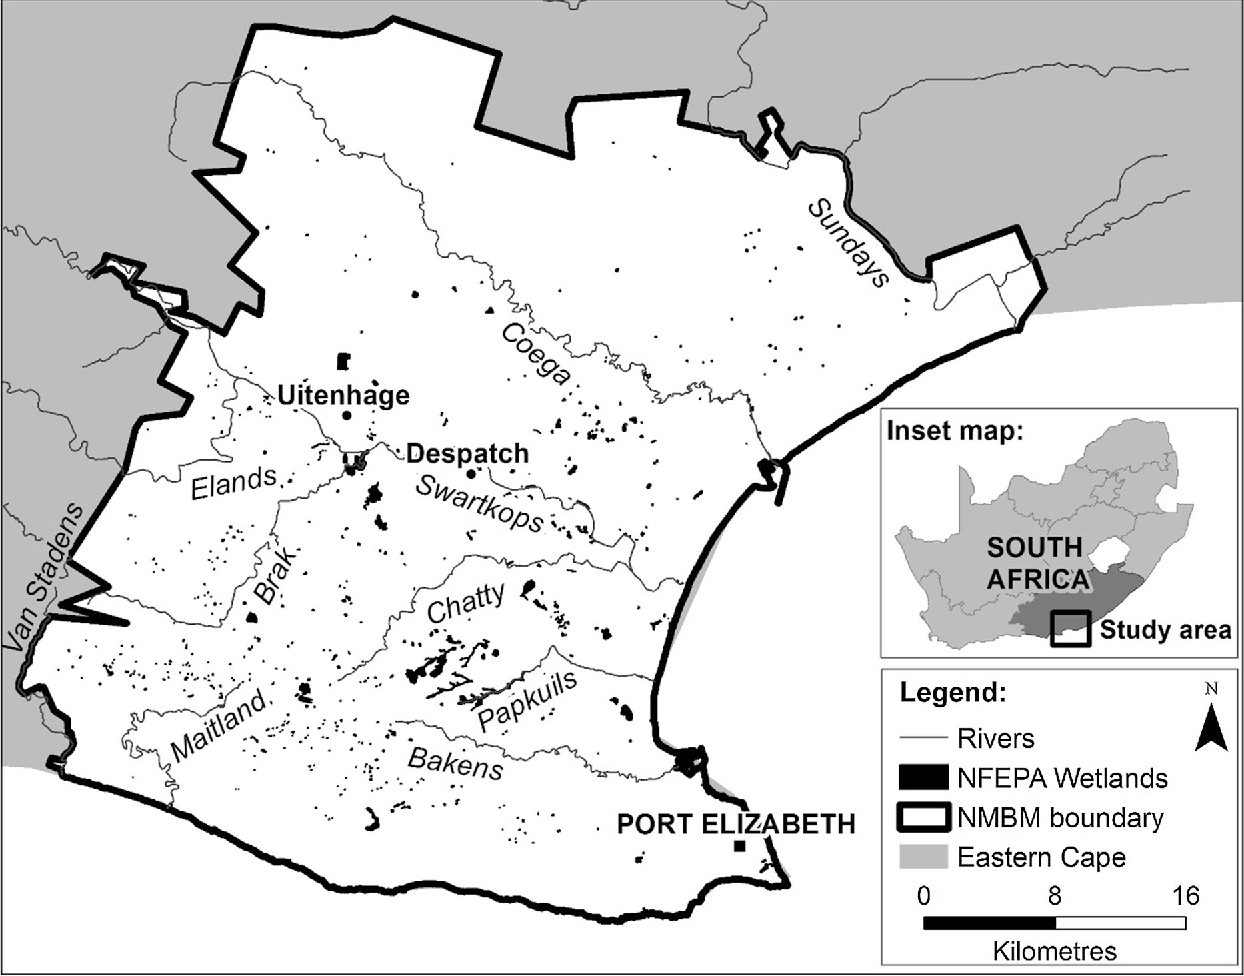 Figure 1 From Mapping Ephemeral Wetlands Manual Digitisation And Logistic Regression Modelling In Nelson Mandela Bay Municipality South Africa Semantic Scholar Madiba map launched so tourists can explore the late leader's south africa. figure 1 from mapping ephemeral